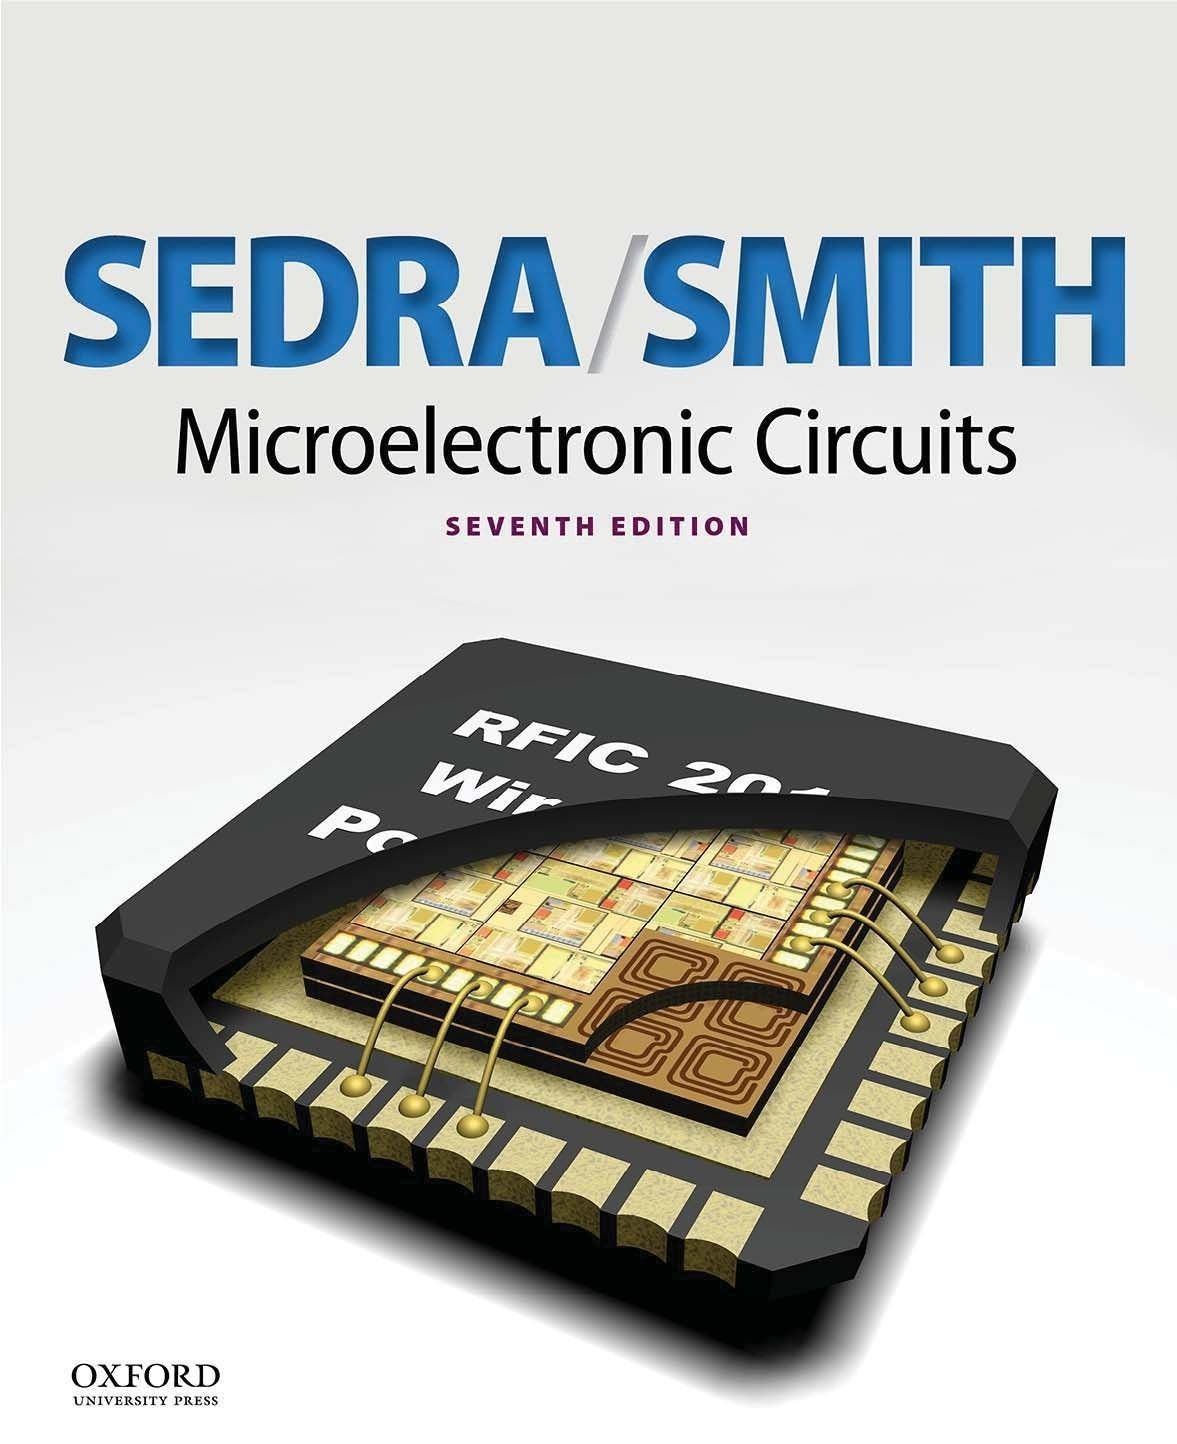 Sedra smith microelectronic circuits 6th conlaocard pinterest sedra smith microelectronic circuits 6th edition pdf mottcountle fandeluxe Gallery